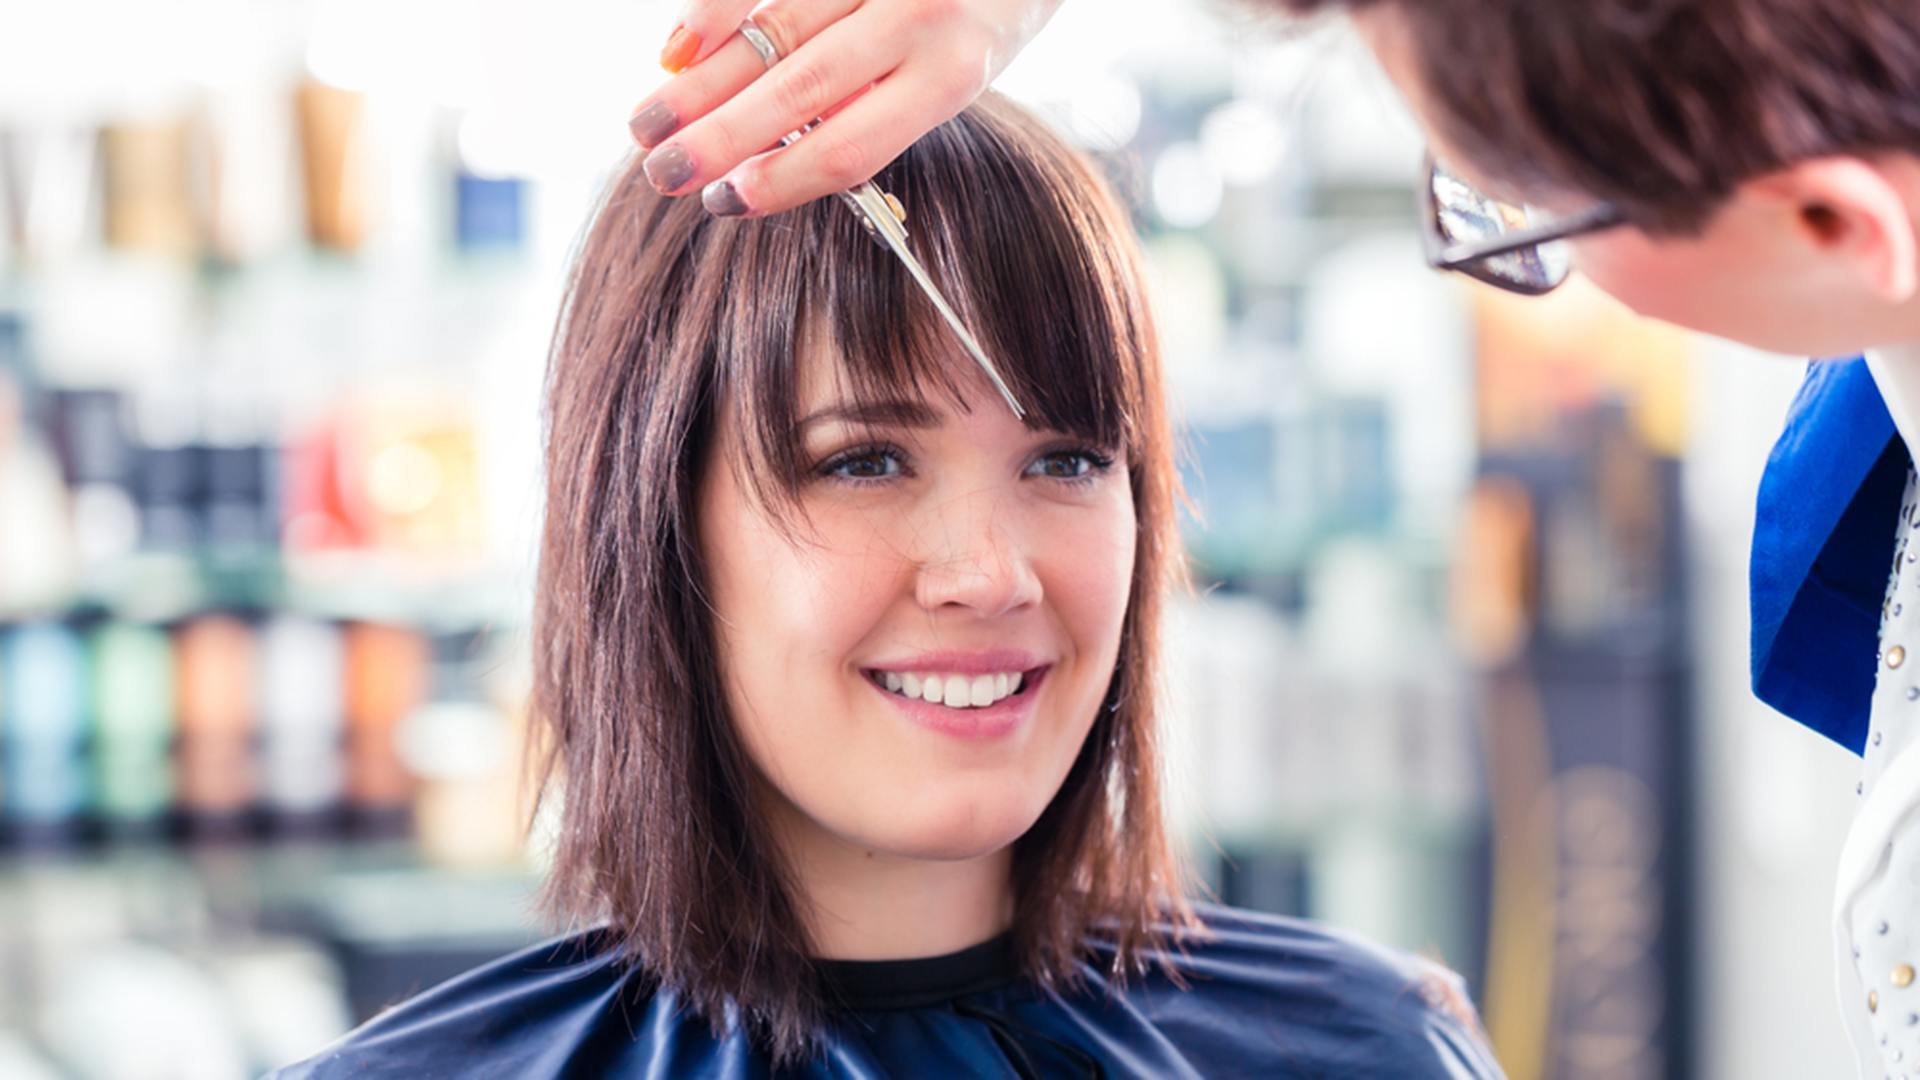 Z Cut Hairstyle: Hair Salon Etiquette: What If I Hate My Haircut?